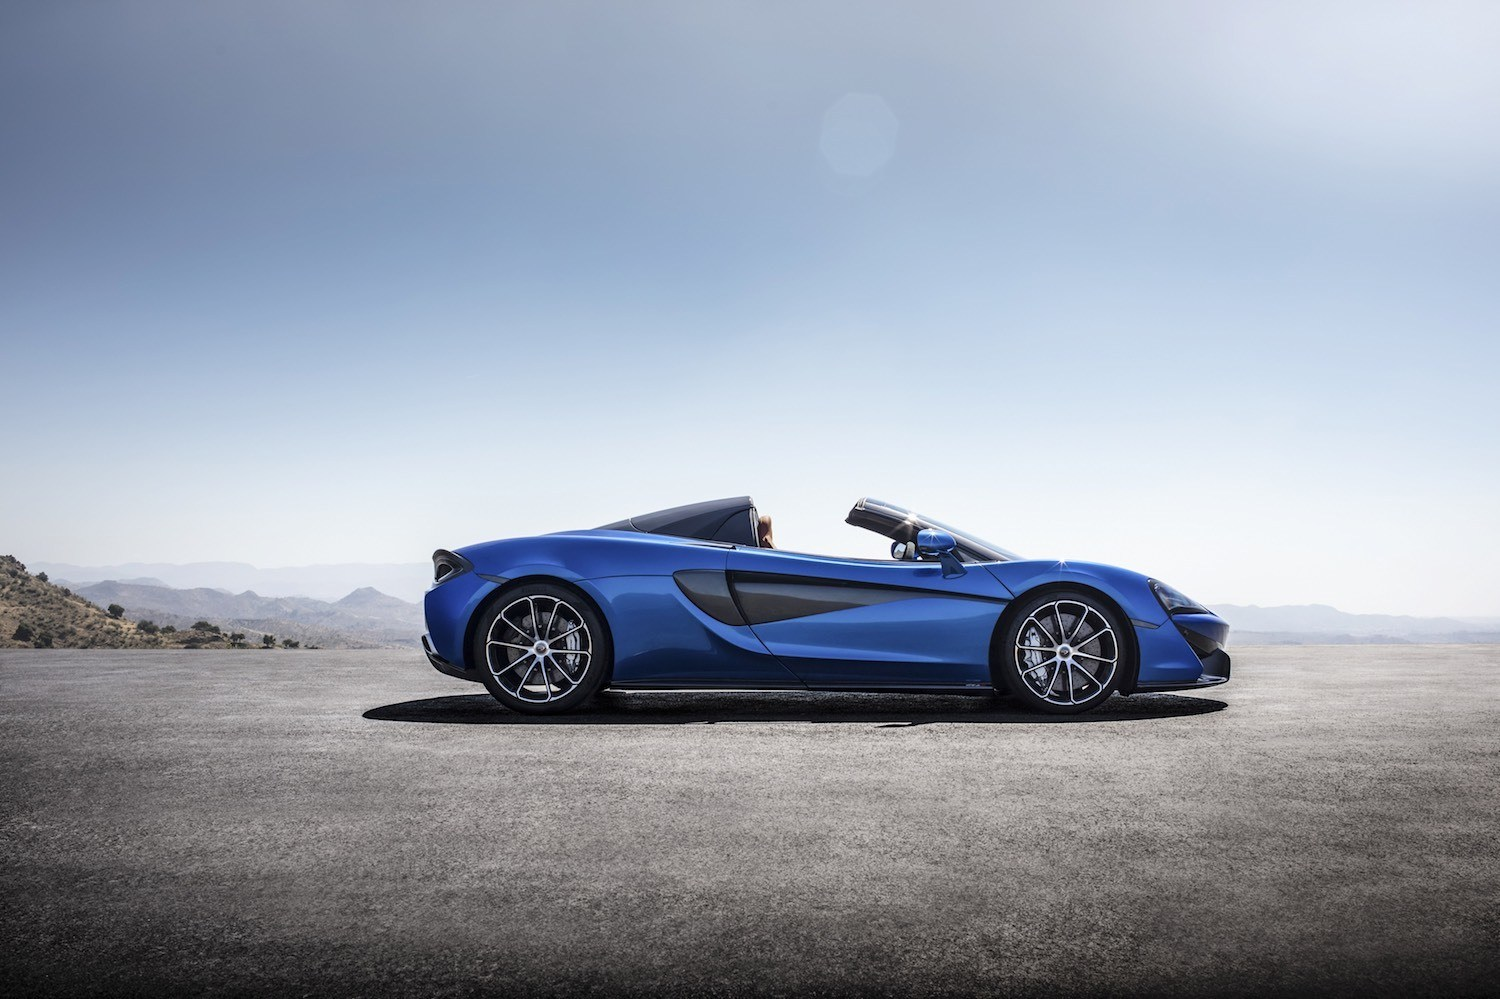 Neil Lyndon reviews the latest New McLaren 720S Spider for Drive 13